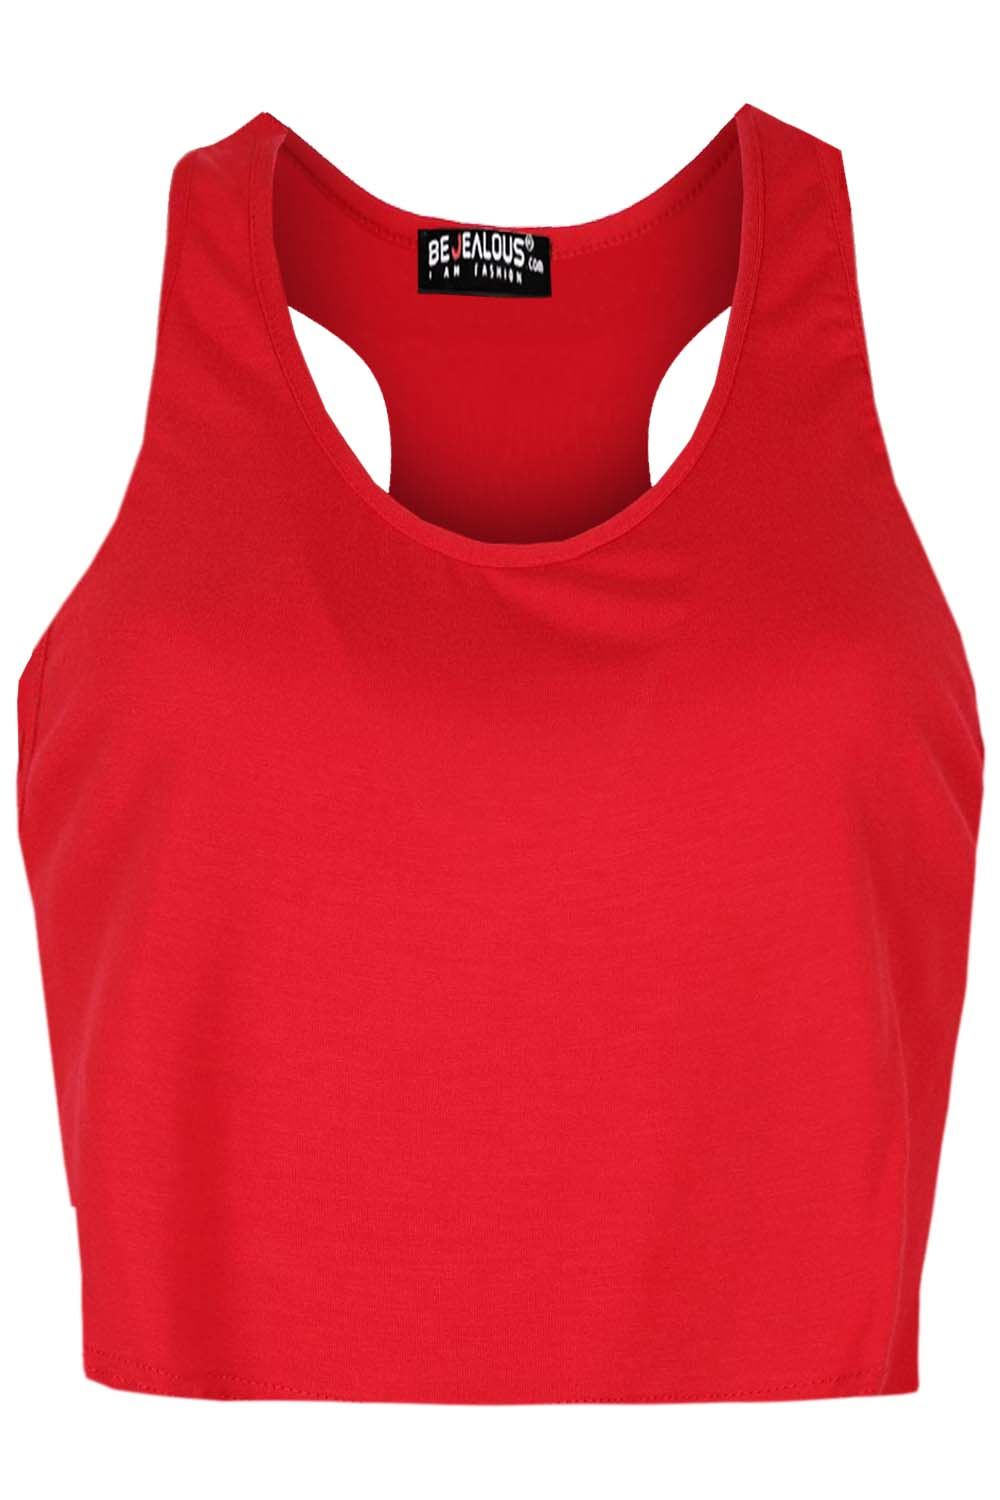 0fa5aed74f4 Ladies Womens Plain Muscle Racer Back Deep Cut Out Side Tank Crop ...